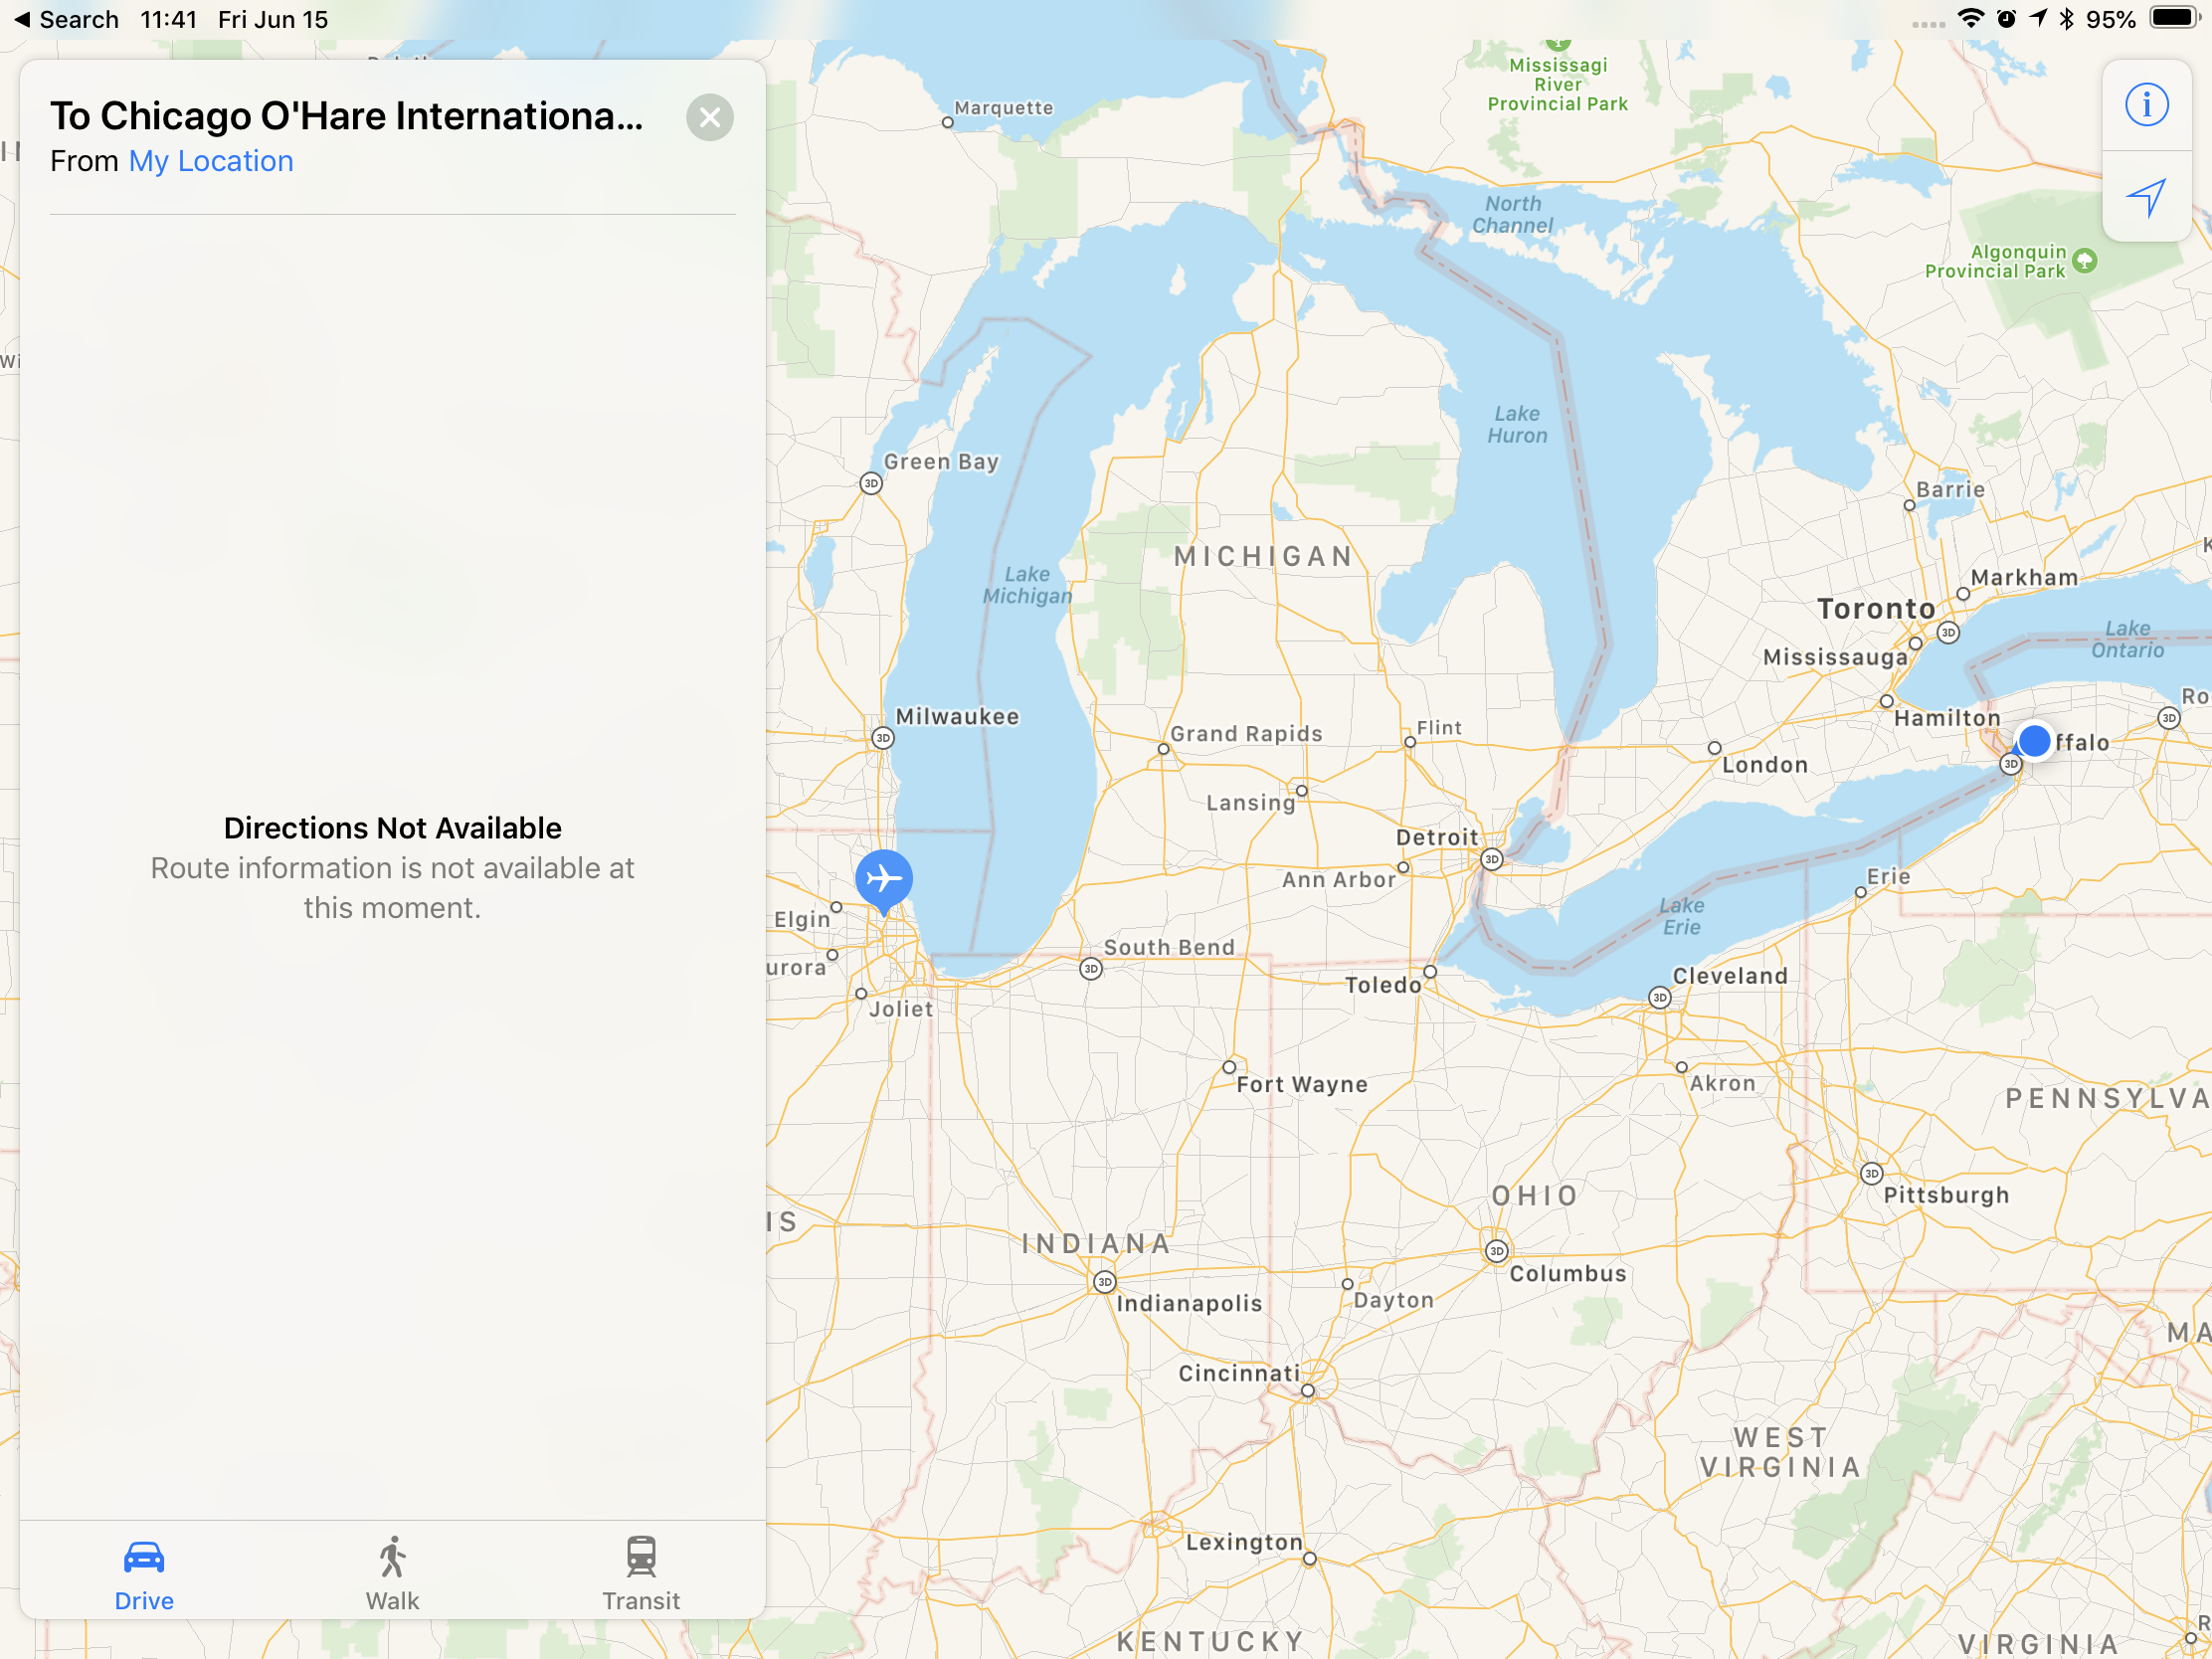 Apple Maps is more broken than usual